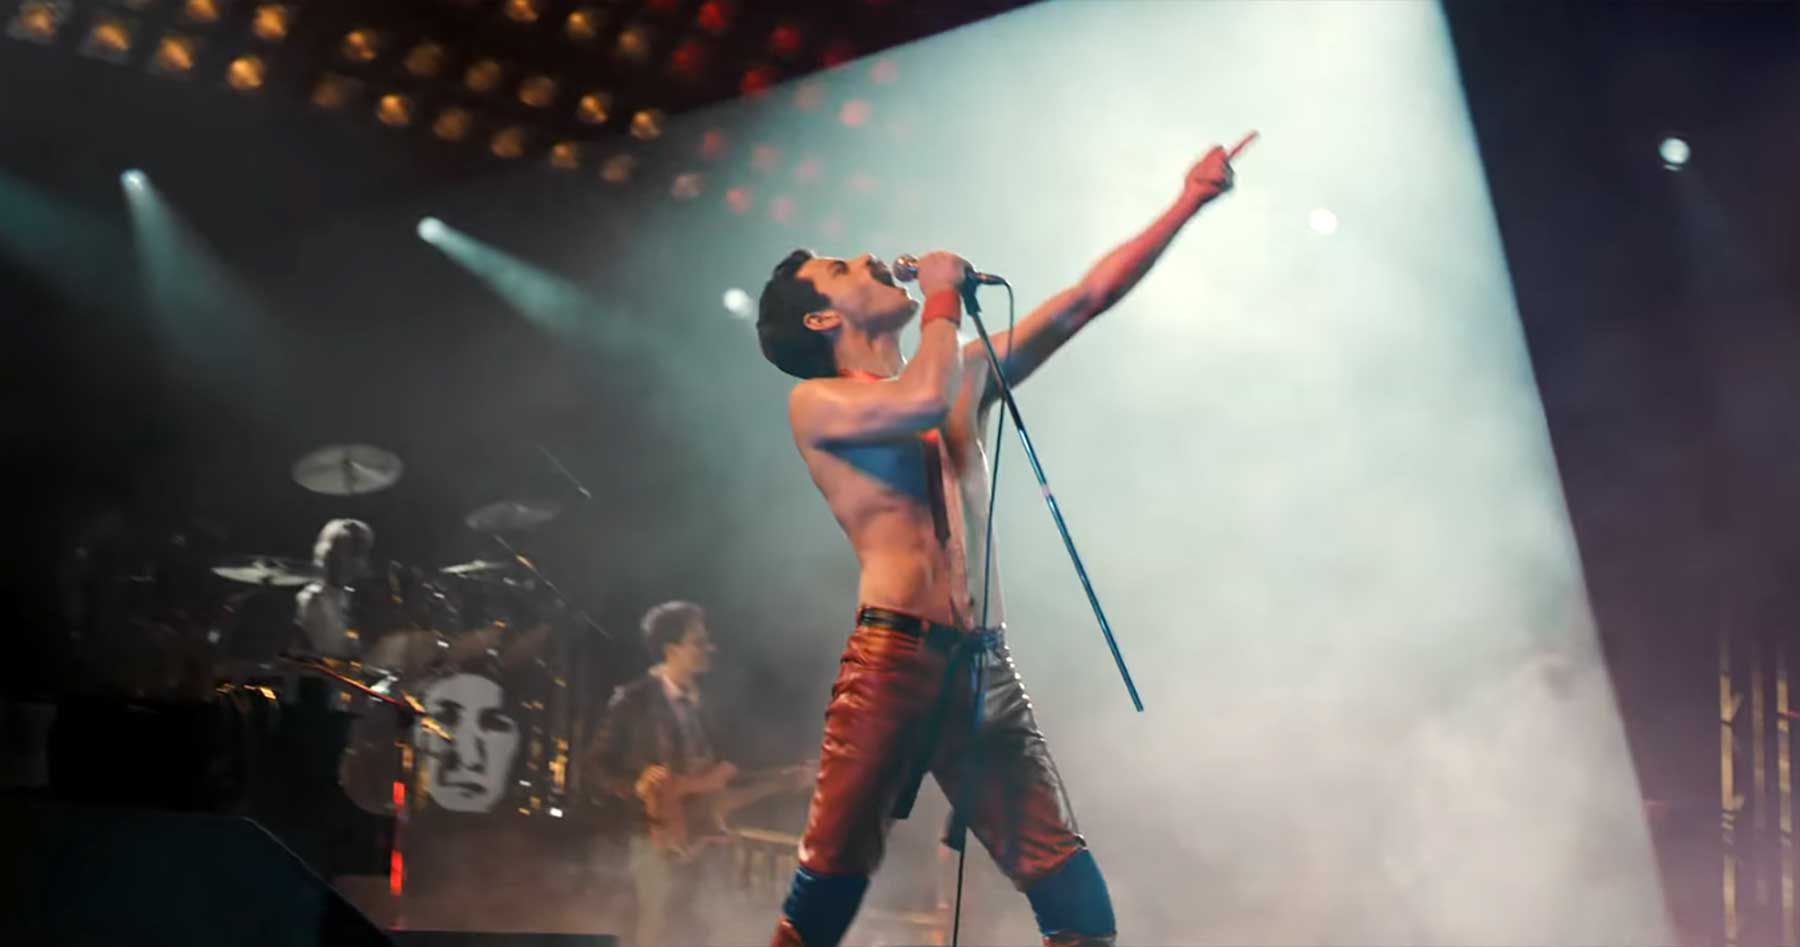 Bohemian Rhapsody: Trailer 2 zum Freddie Mercury-Film Queen-bohemian-rhapsody-movie-trailer-2